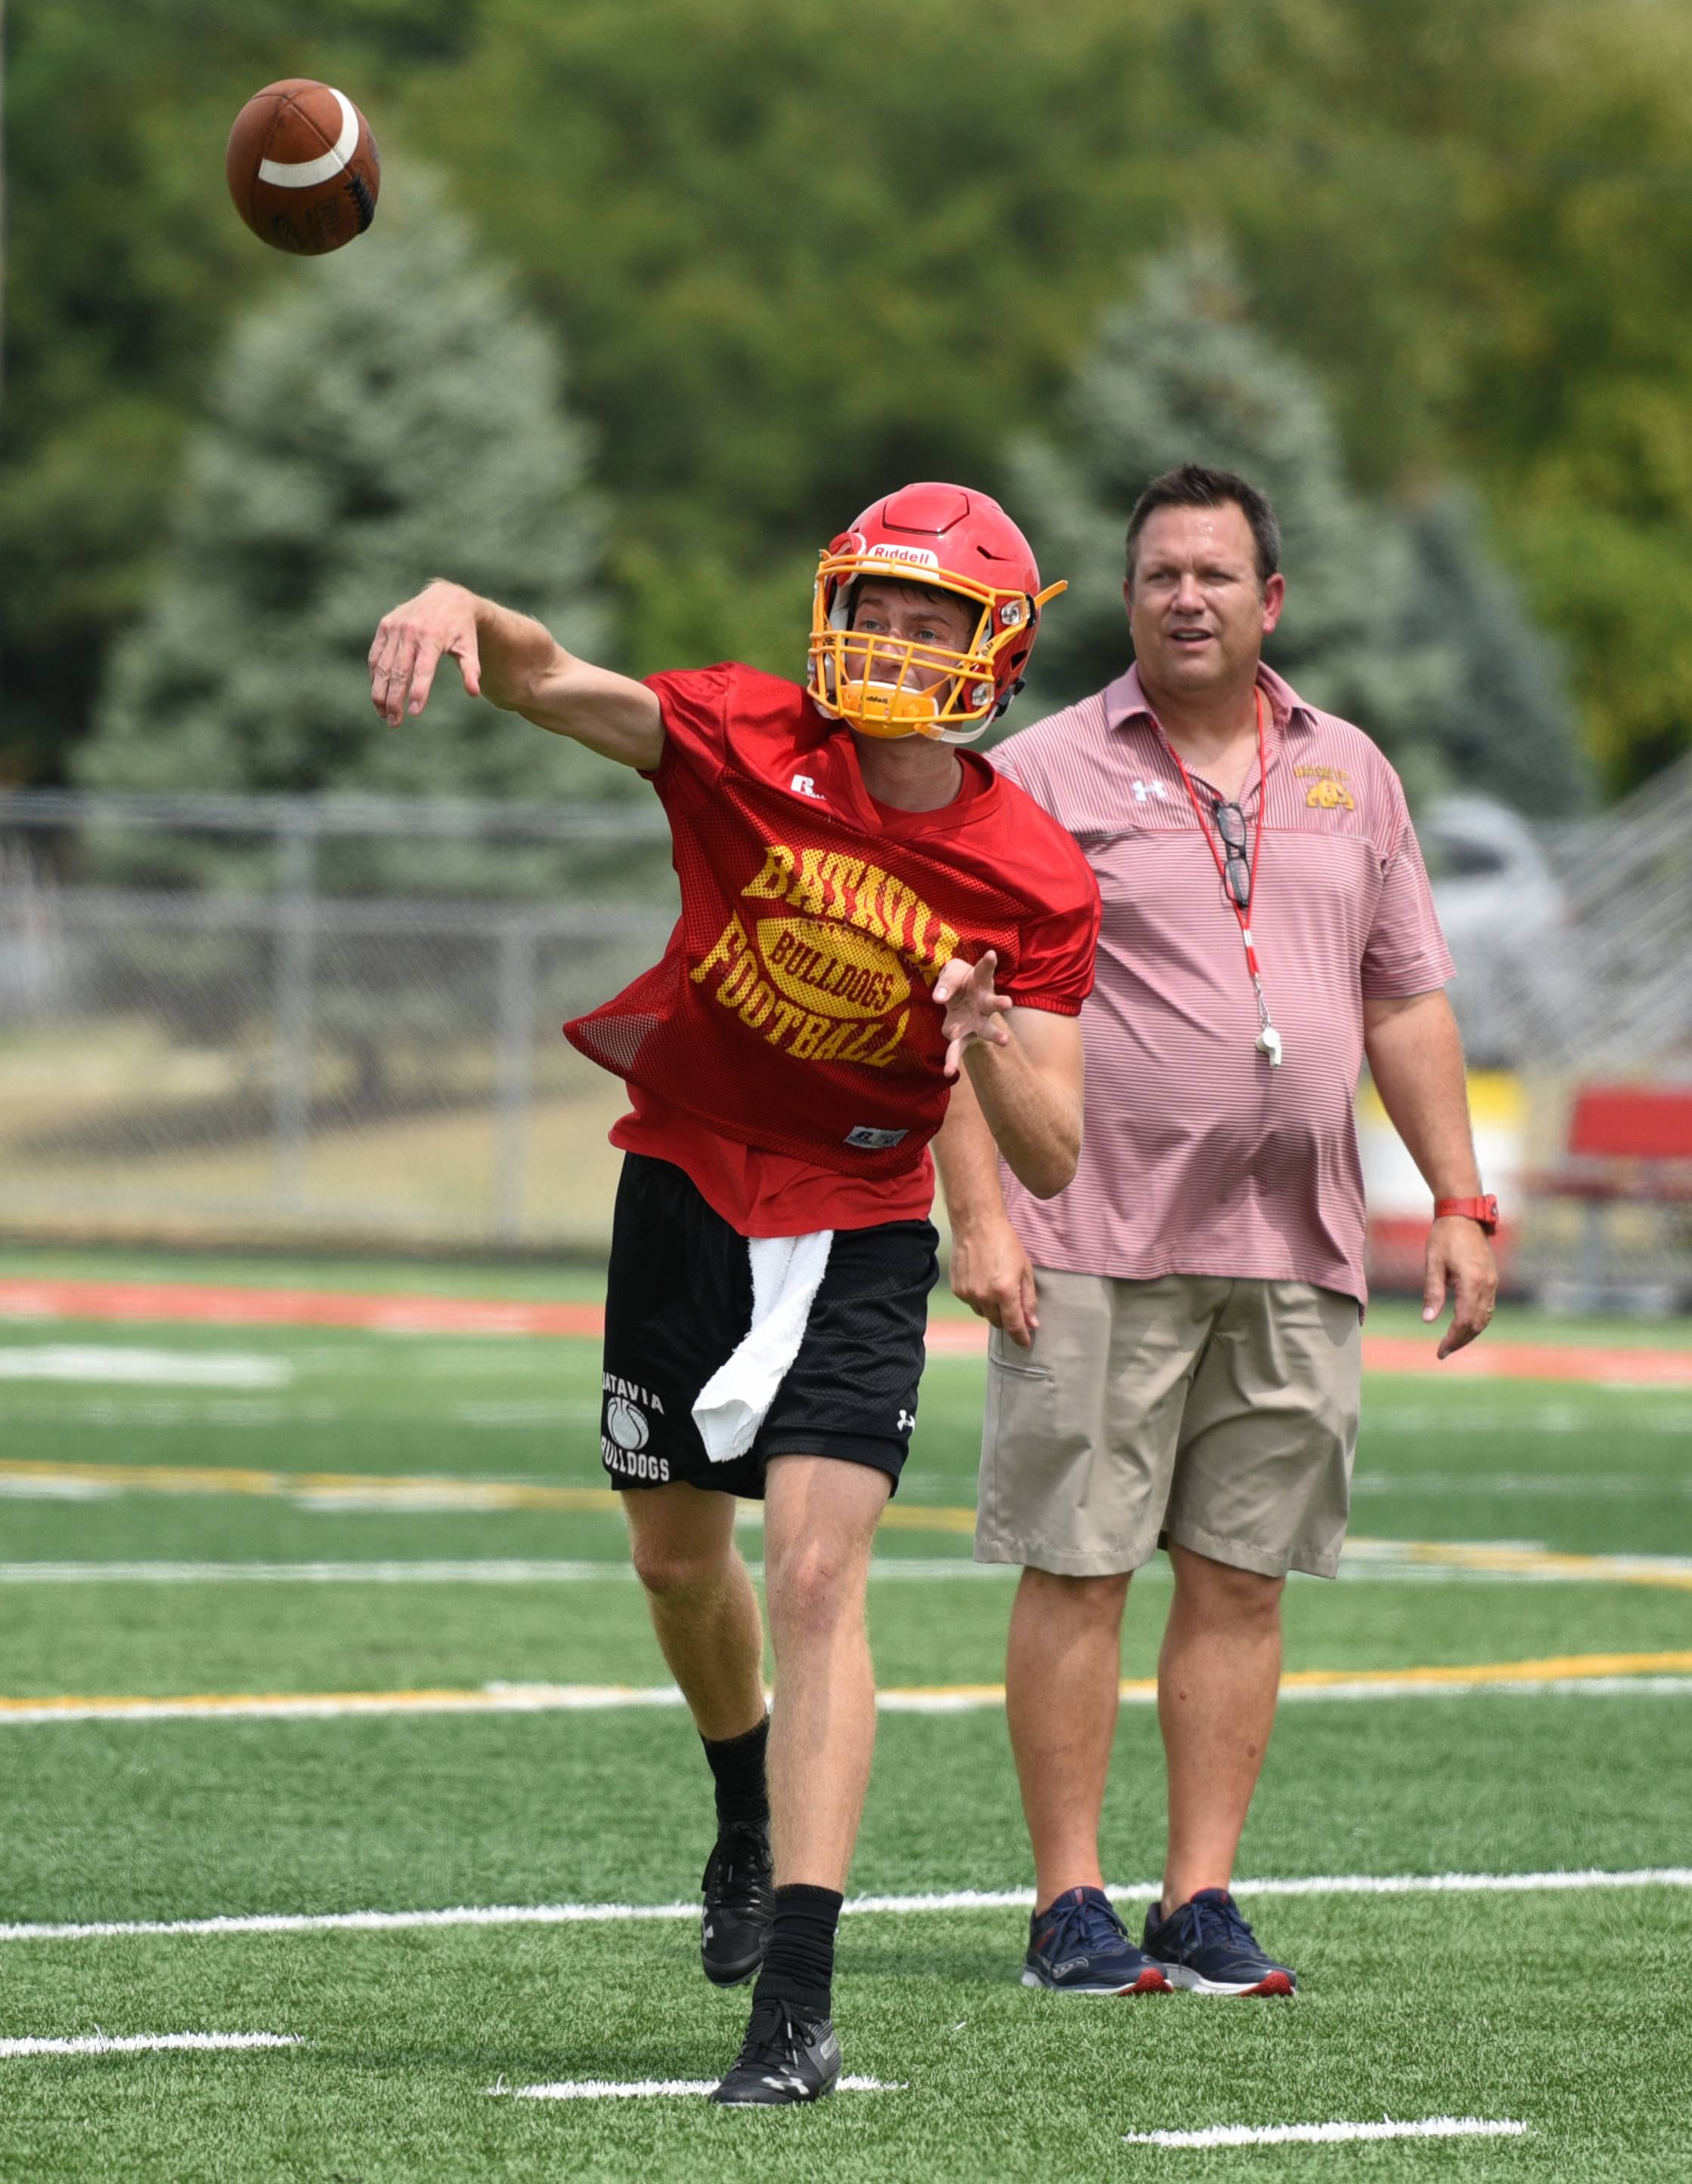 Quarterback Jack Meyers works with coach Dennis Piron during the first day of football practice at Batavia High School Monday.